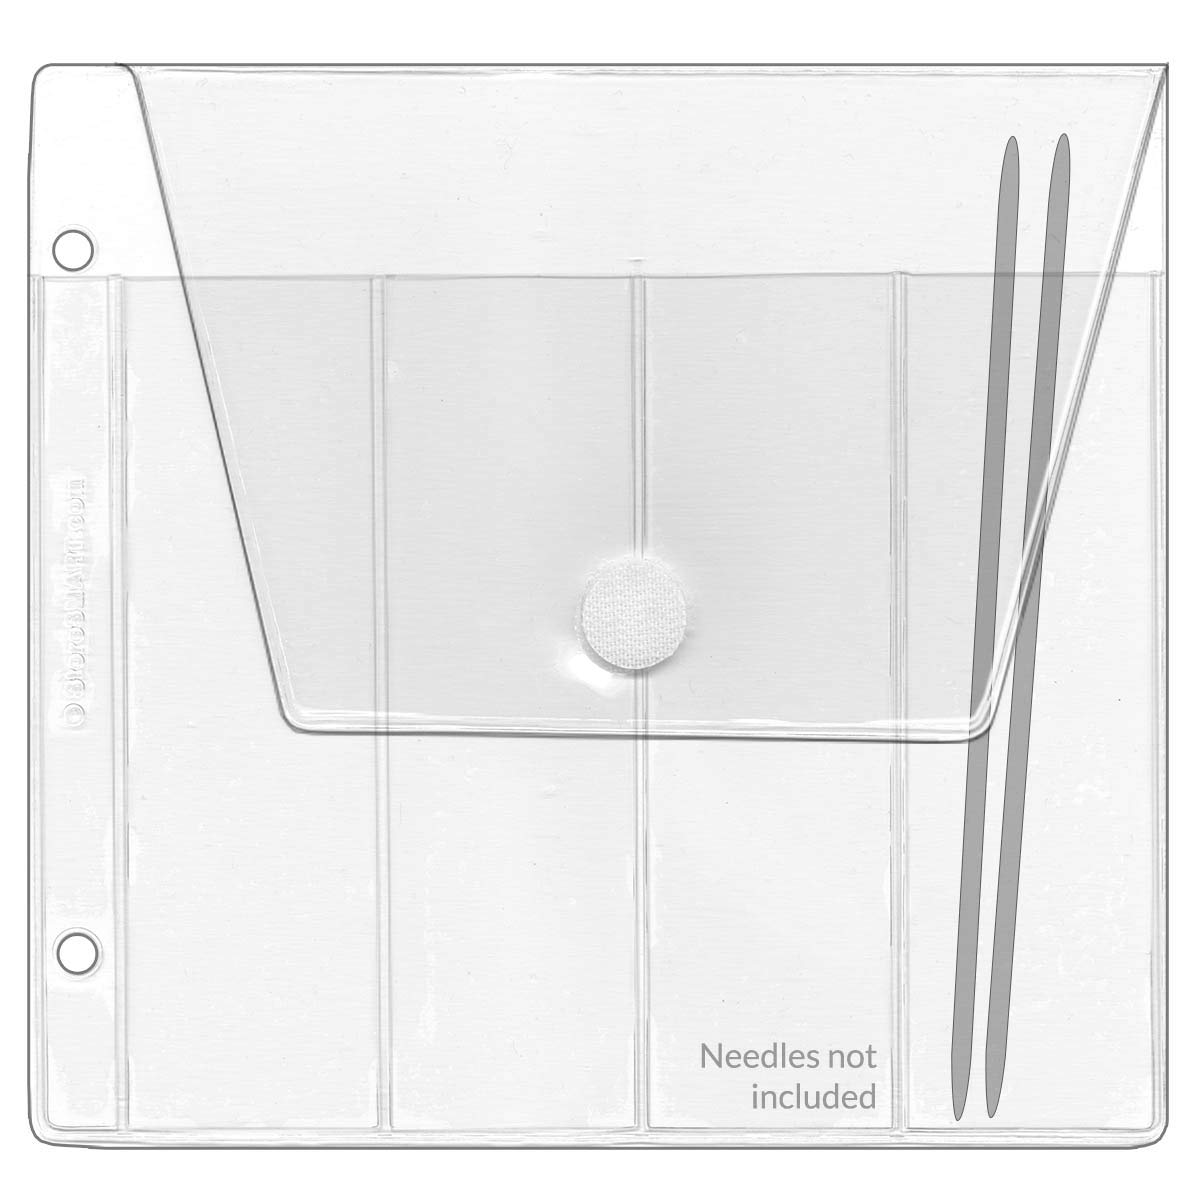 StoreSMART - 6'' Double Pointed Needles Binder Page with Flap and Hook & Loop Closure - 50-Pack - DP4256-50